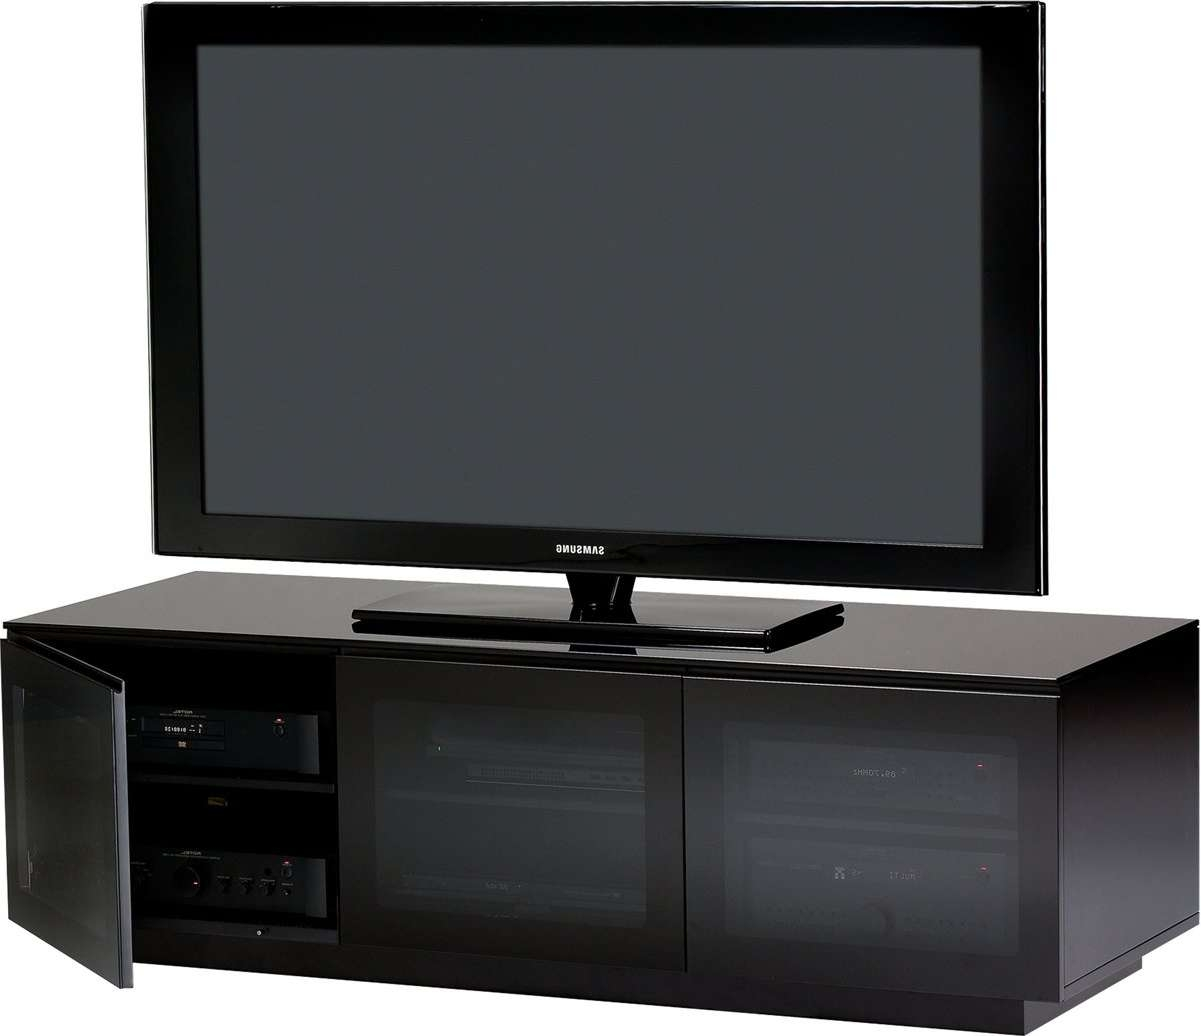 Bdi Mirage 8227 Tv Stands With Black Glass Tv Cabinets (View 16 of 20)